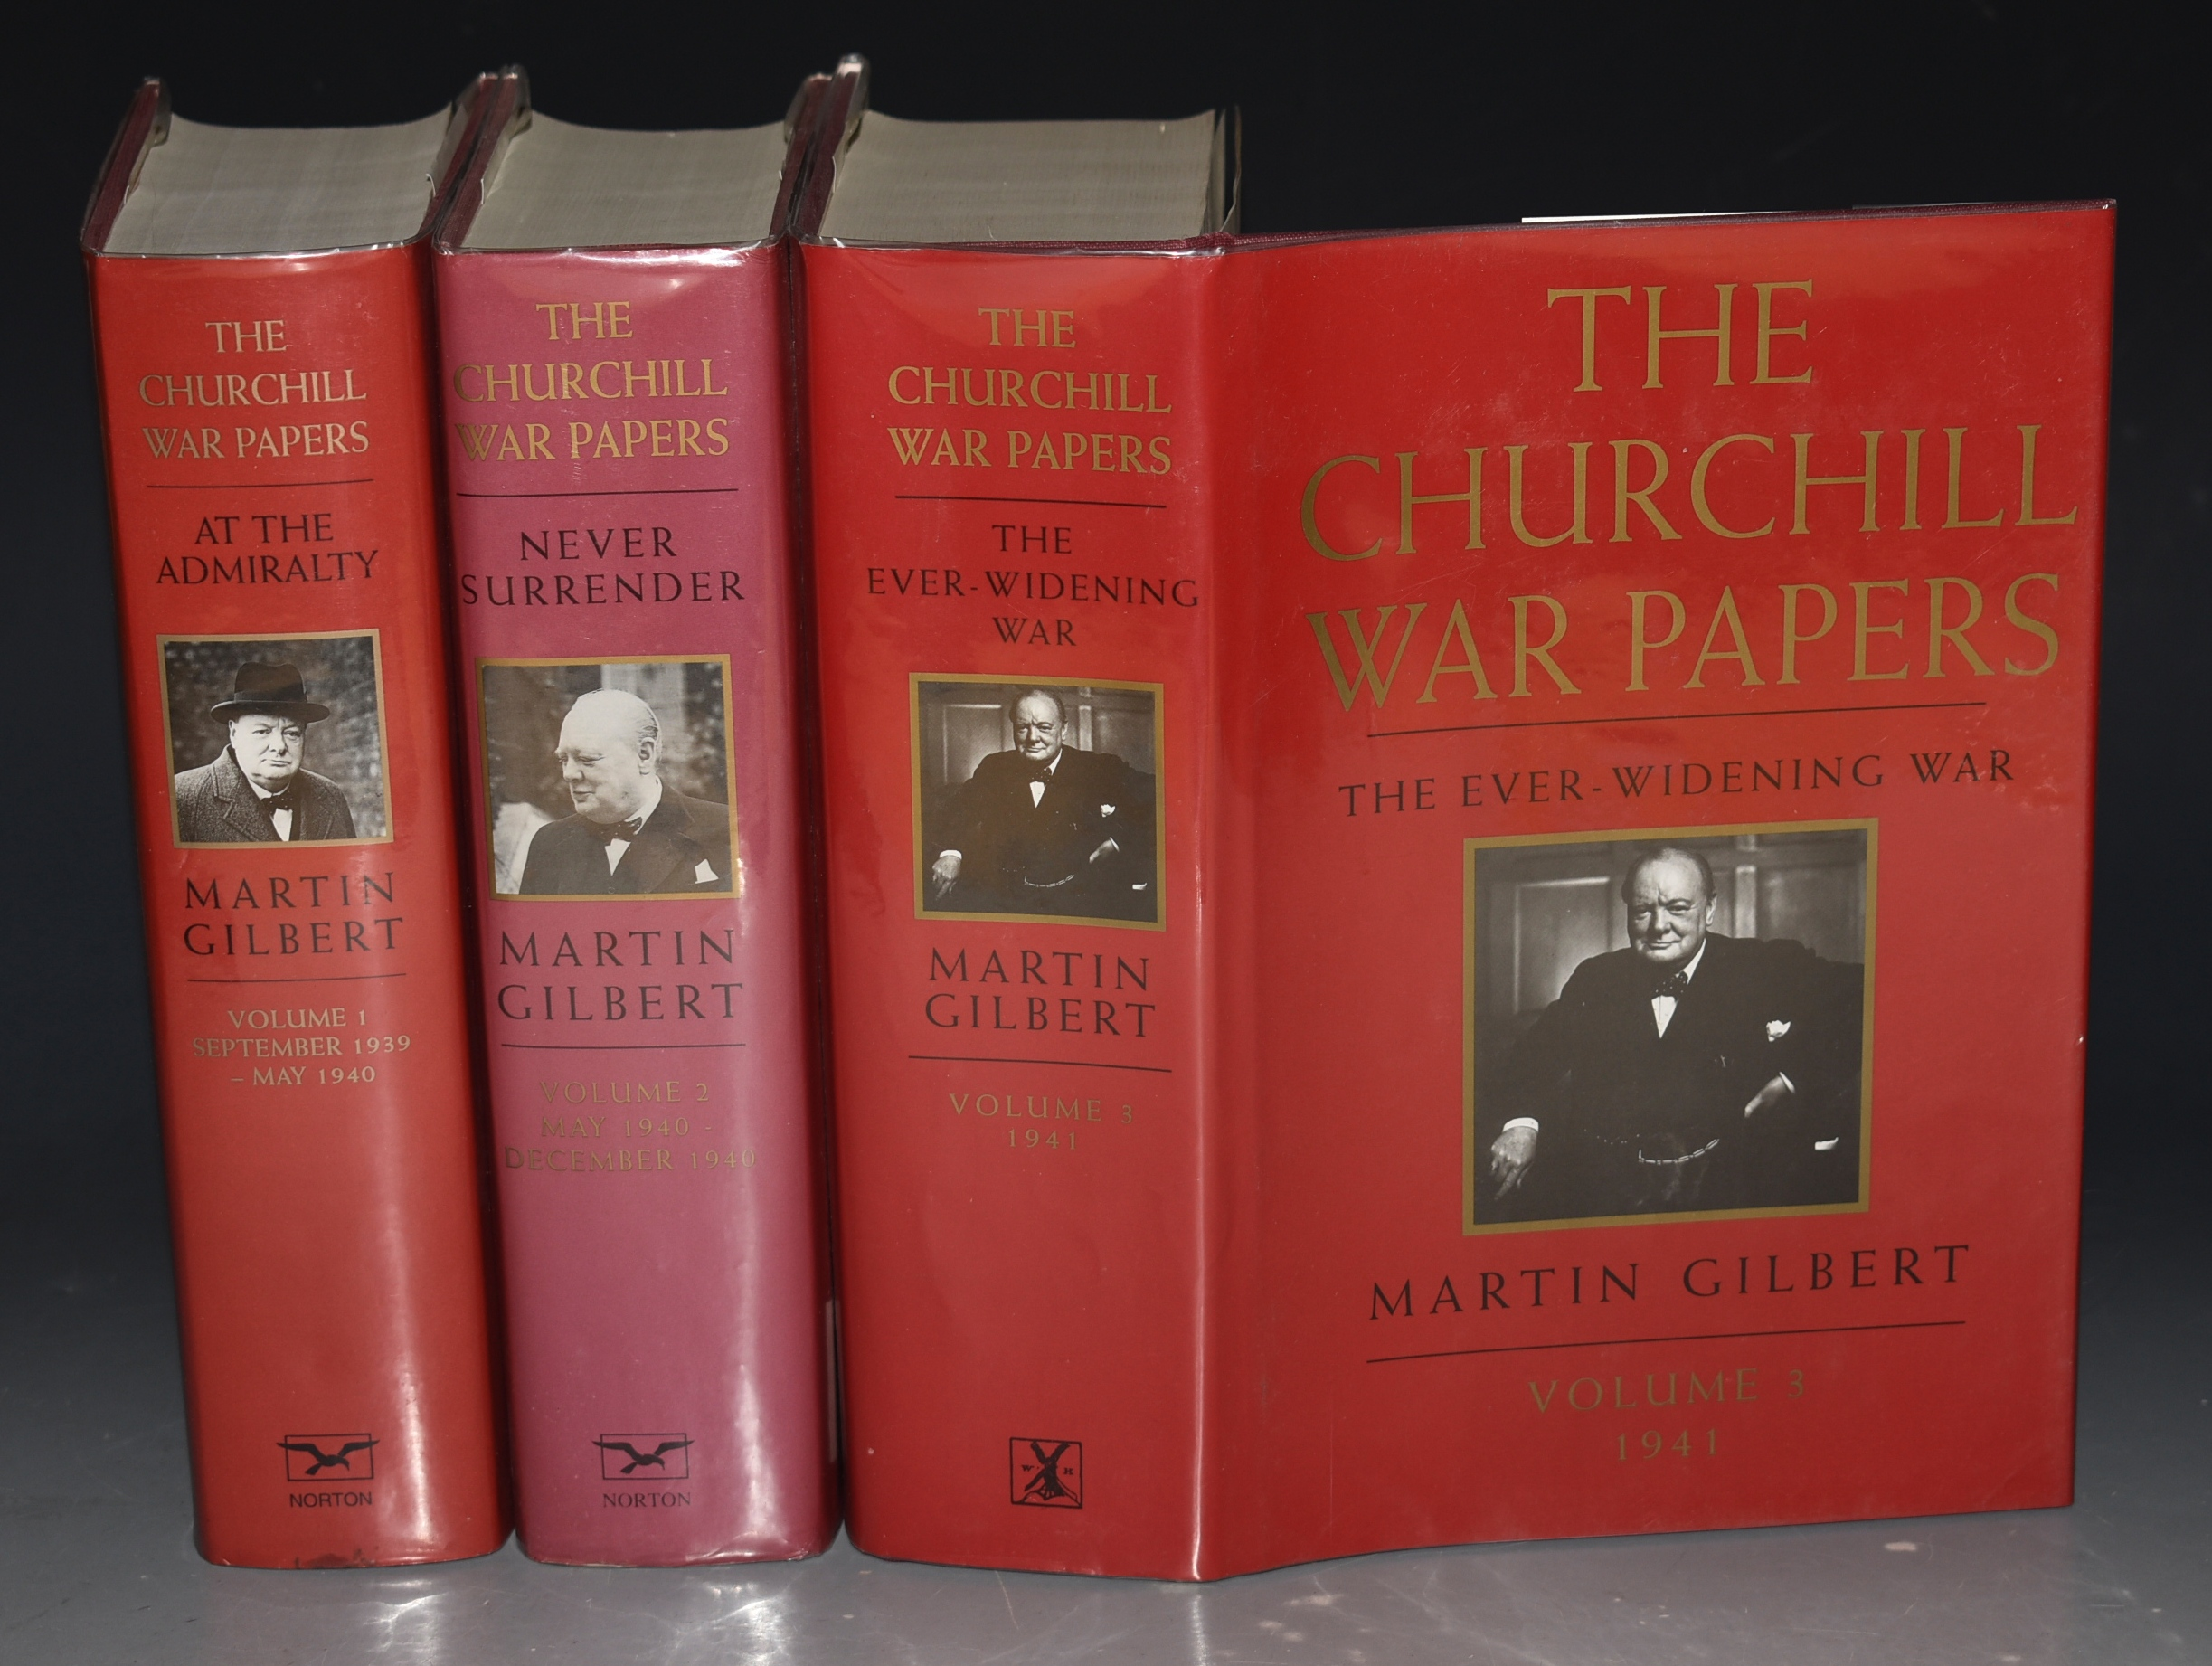 Image for THE CHURCHILL WAR PAPERS. Complete 3 Volume Set. Vol. I. At the Admiralty September 1939 - May 1940. Vol. 2 Never Surrender. May 1940 - December 1940. Vol. 3 The Ever-Widening War 1941